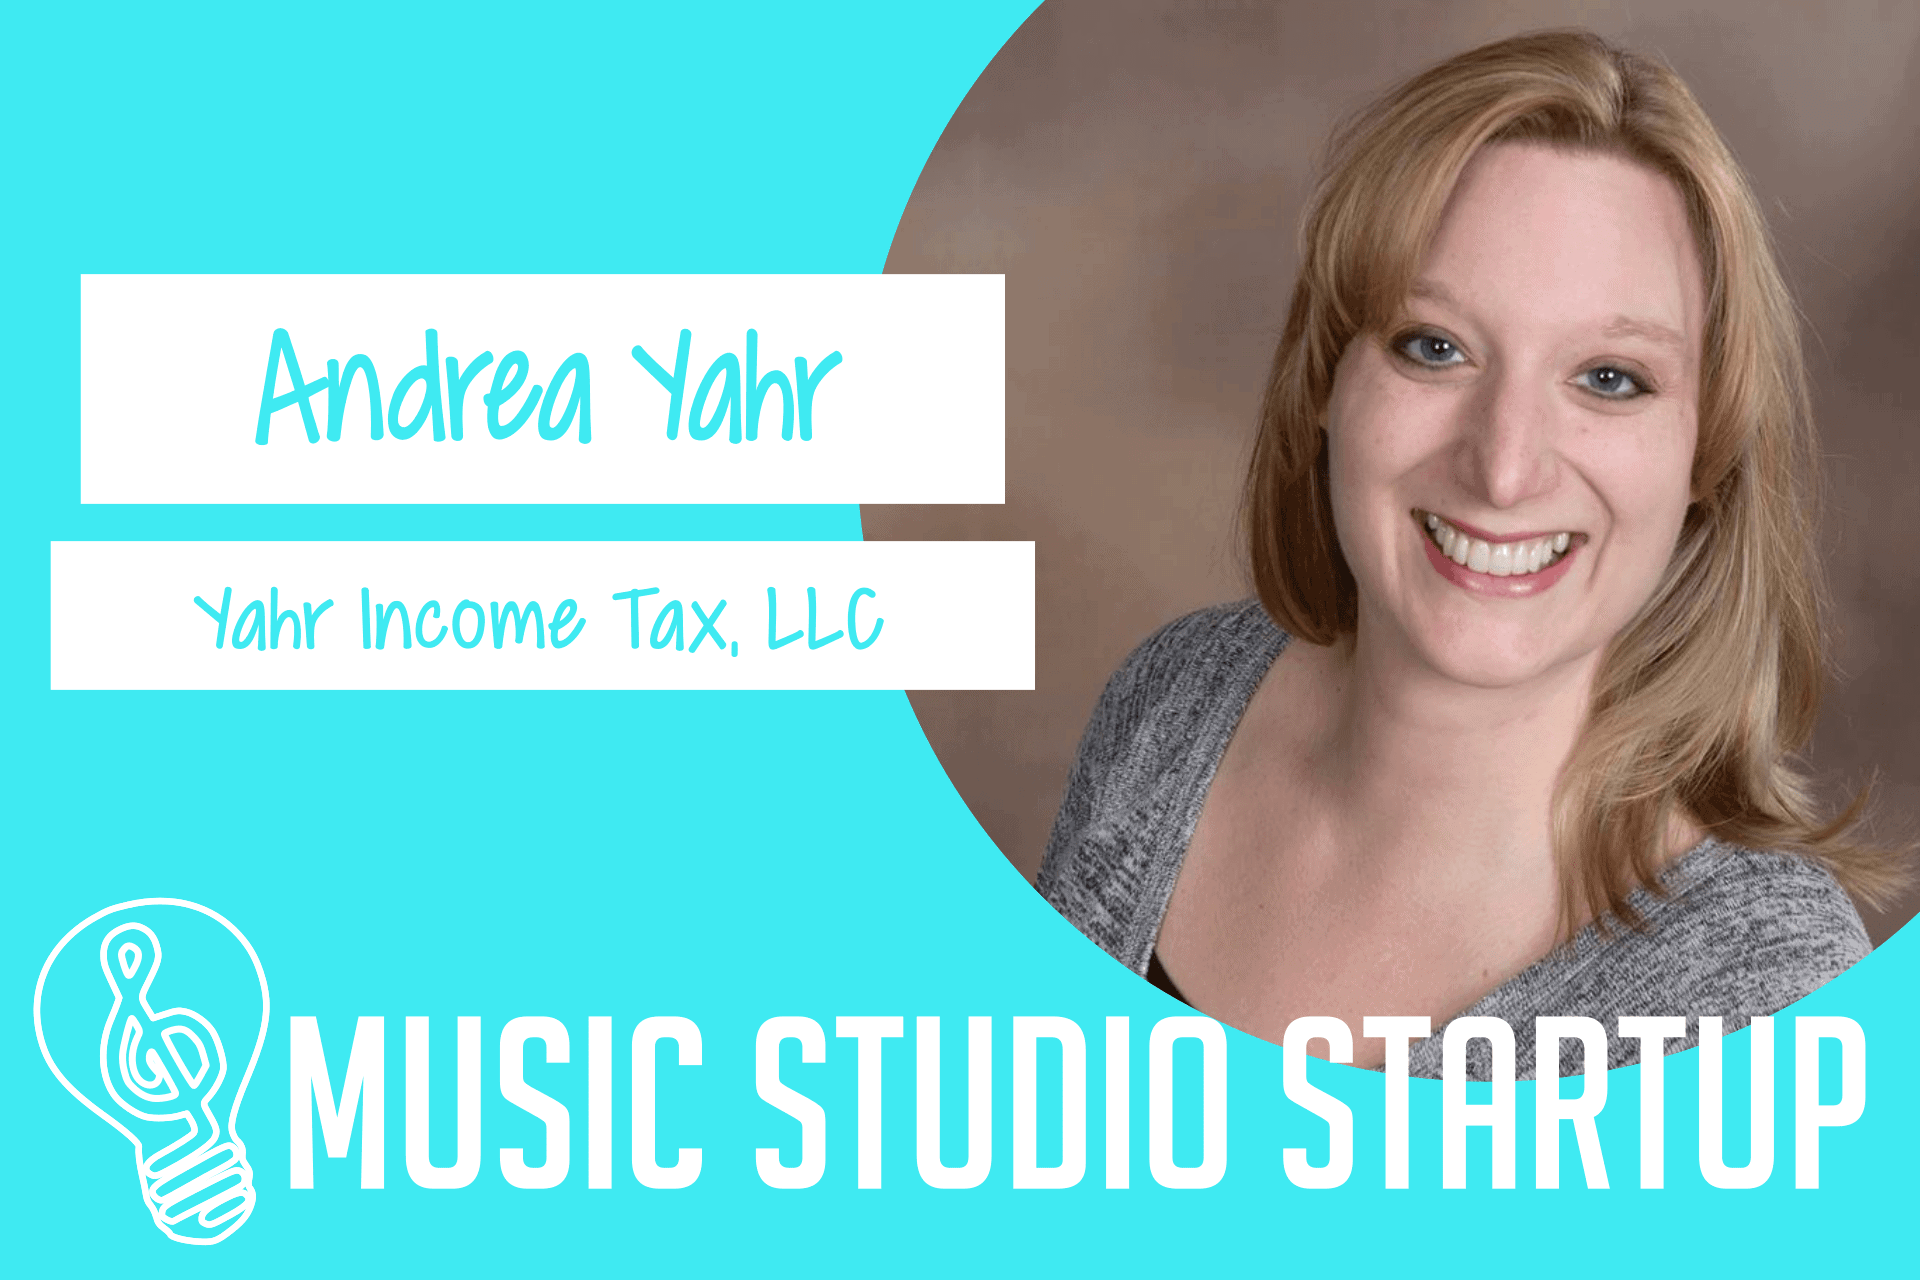 Episode 012 – Andrea Yahr on Business Structures and Their Tax Implications